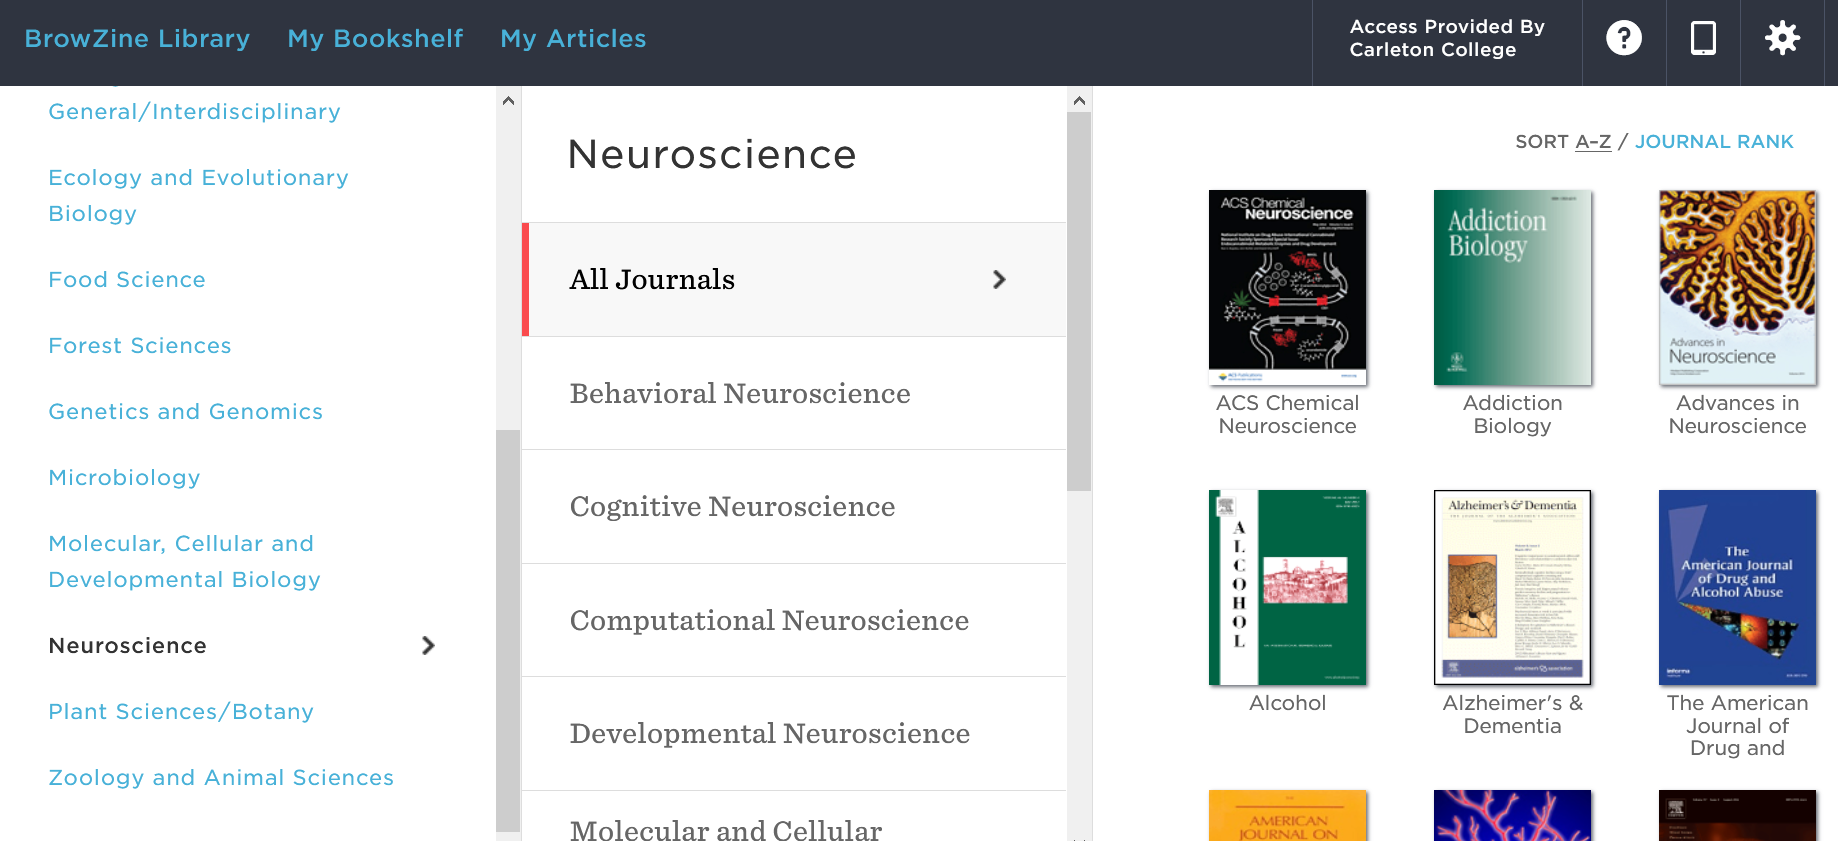 """Screenshot of Browzine. On the left side of the screen, the category """"Neuroscience"""" has been selected from a list of disciplines. On the right side of the screen, a list of neuroscience journals is displayed."""